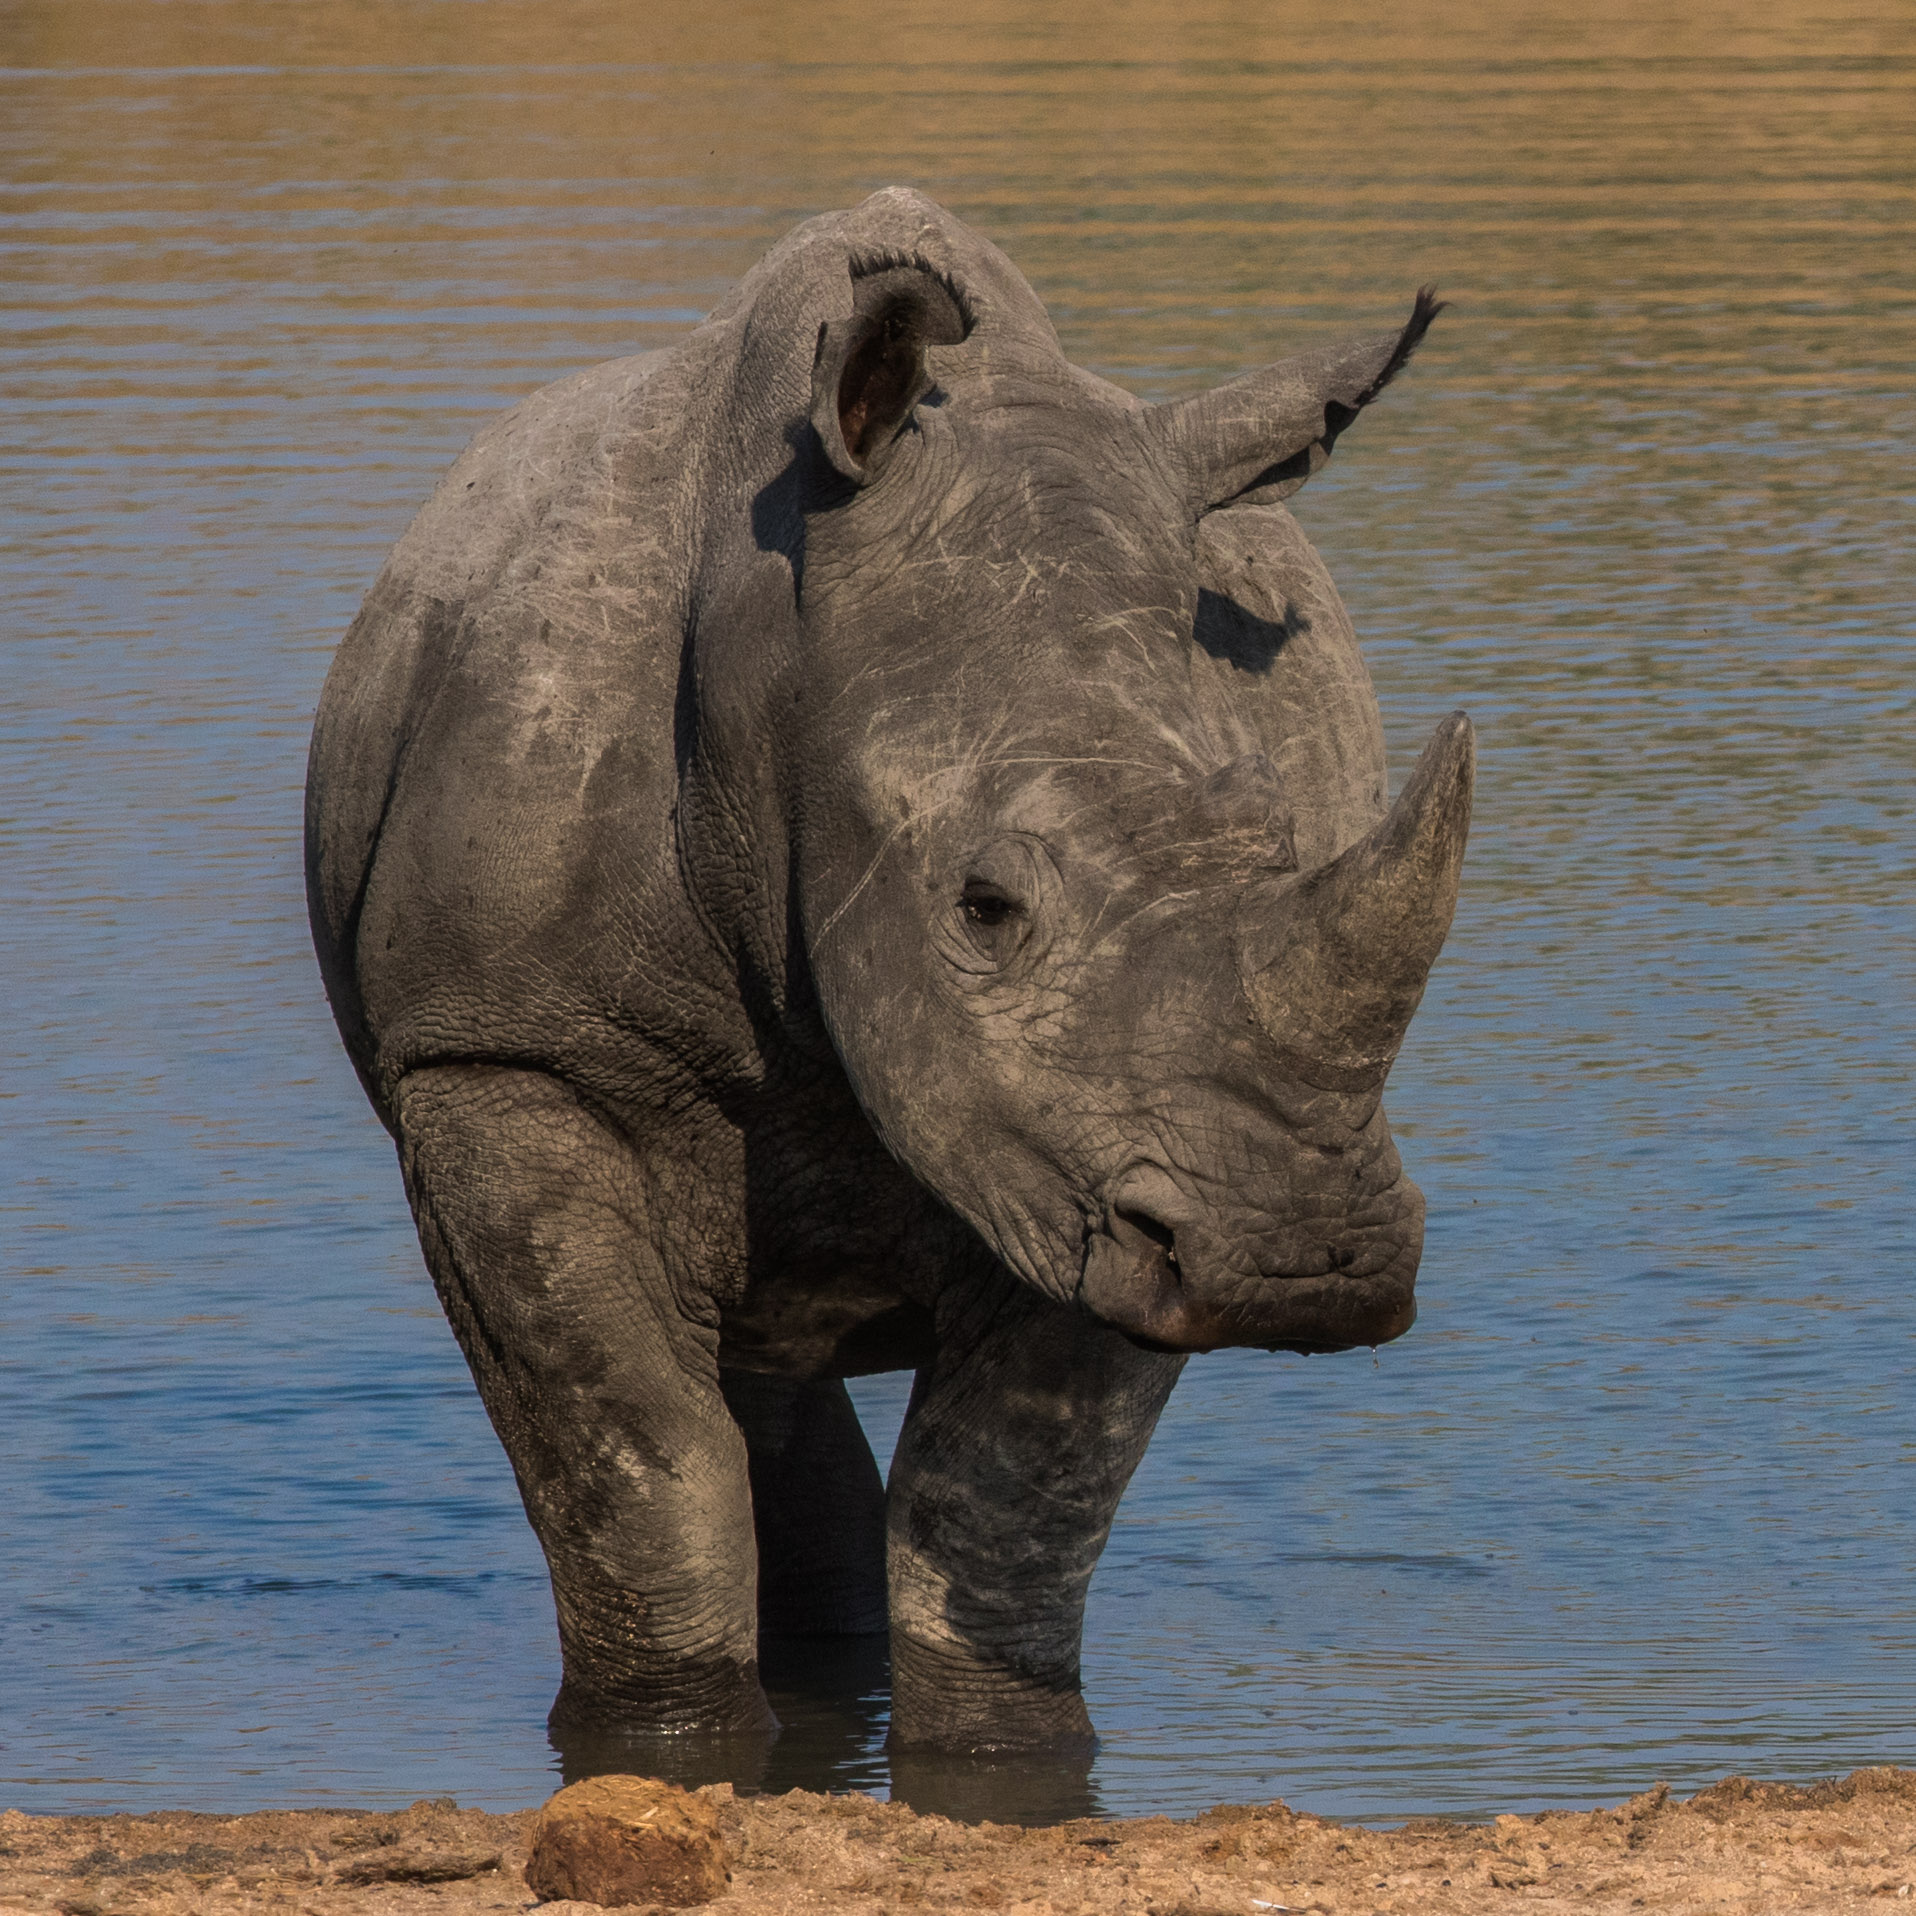 A white rhinoceros cools itself down from the water's edge.